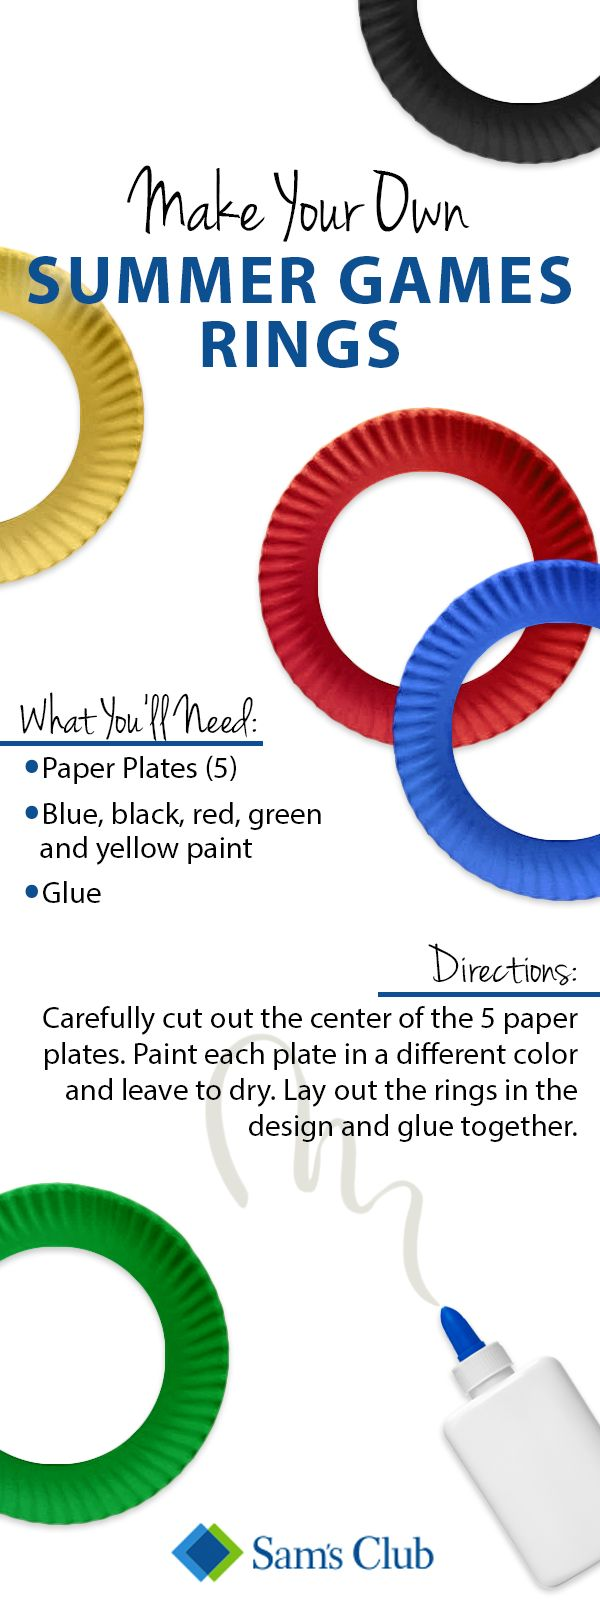 Bring this year's Summer Games to life with this easy, ring DIY project! Simply grab uncoated, lightweight paper plates from Sam's Club, glue and colorful paint in blue, black, red, green and yellow. Paint each plate a different color, let dry and then glue together to make it look like the Summer Game rings!